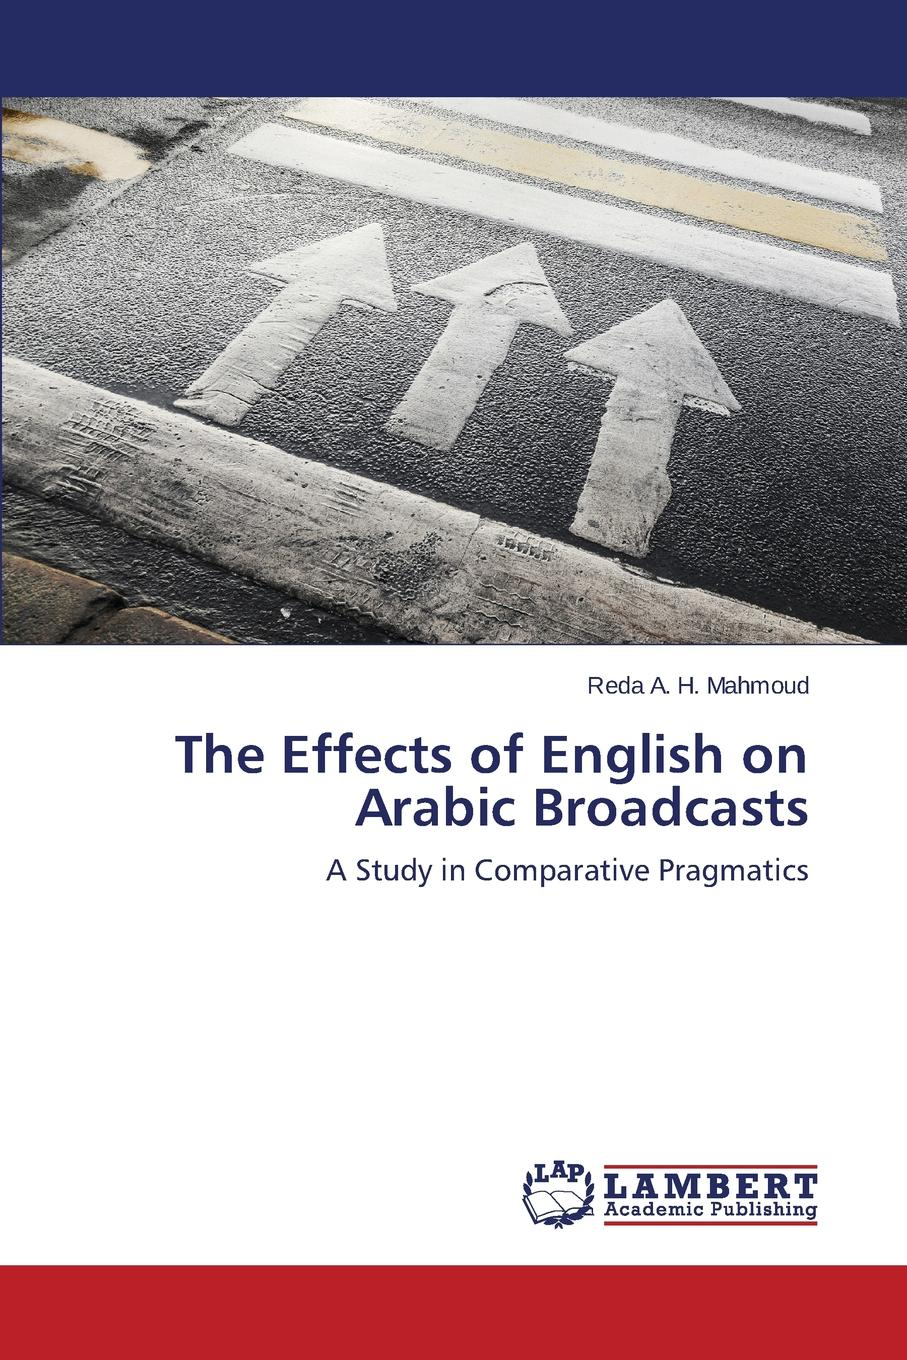 Mahmoud Reda A. H. The Effects of English on Arabic Broadcasts the comparative typology of spanish and english texts story and anecdotes for reading translating and retelling in spanish and english adapted by © linguistic rescue method level a1 a2